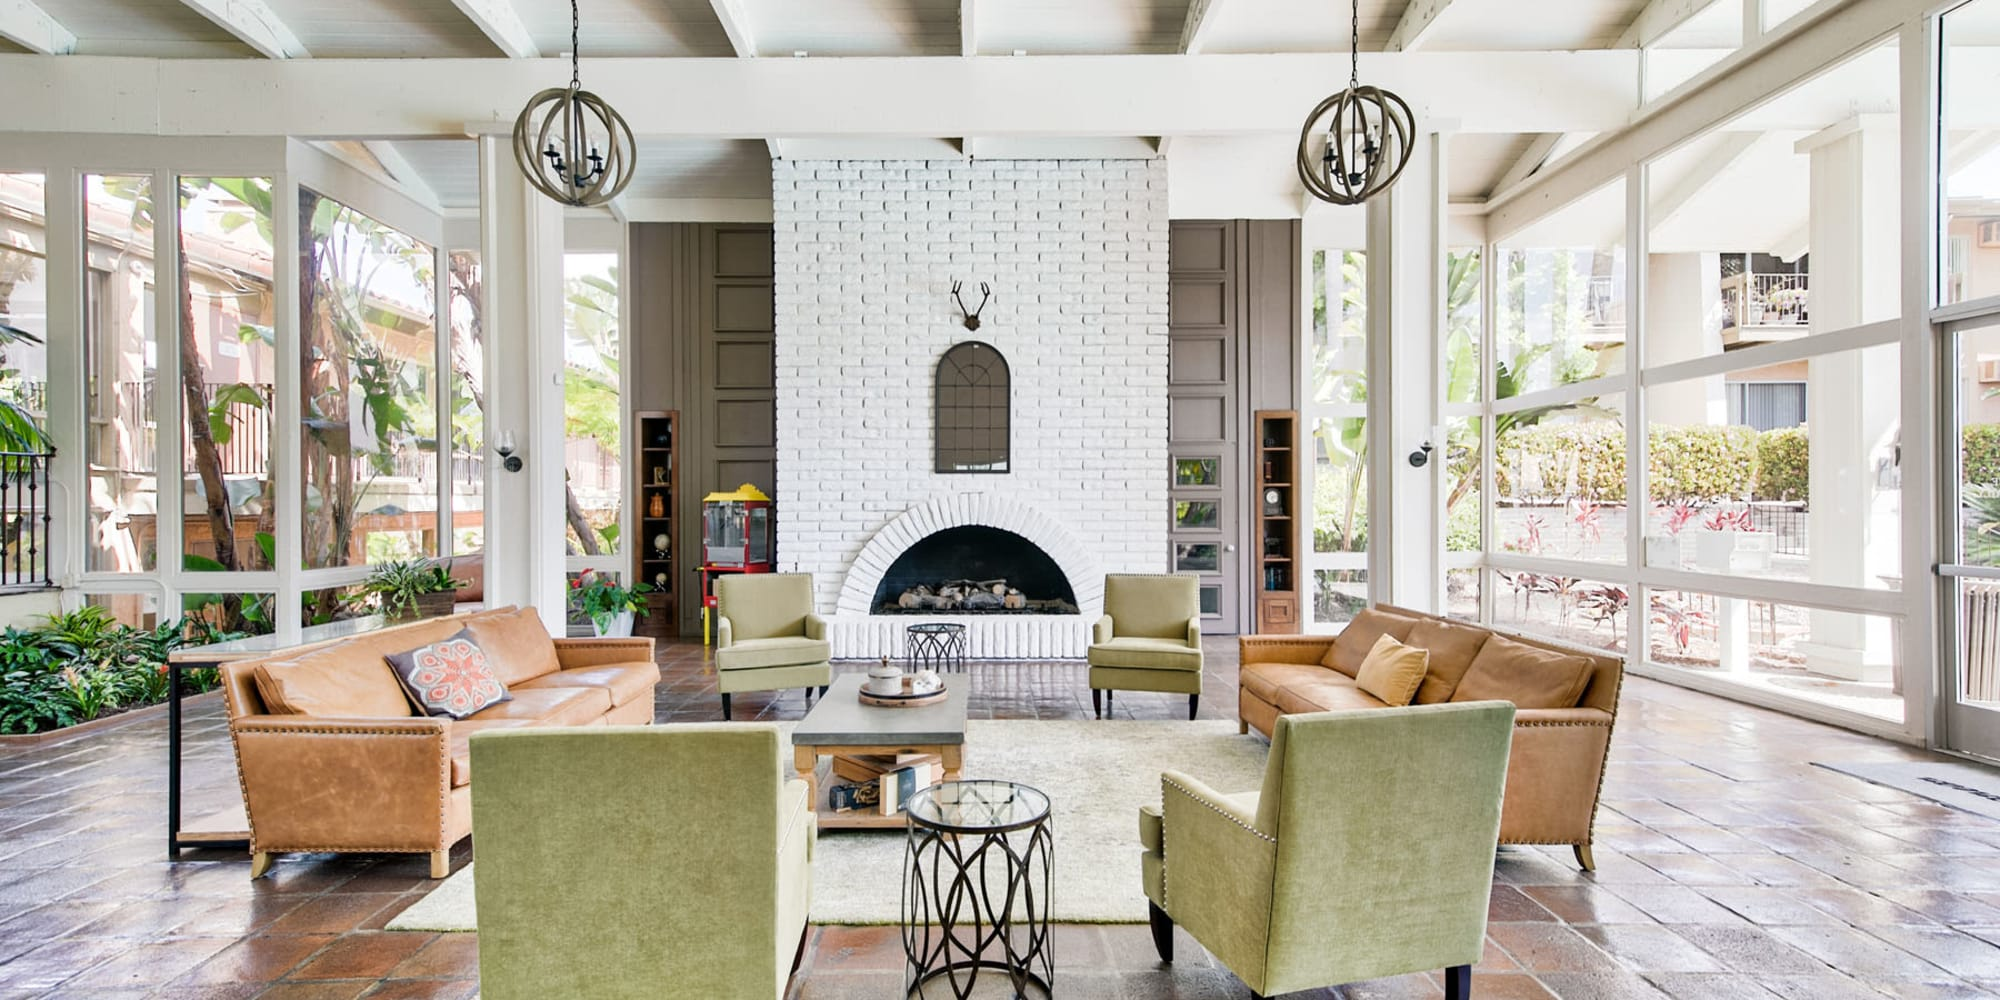 Lounge seating near the fireplace in the resident clubhouse at Mediterranean Village Apartments in Costa Mesa, California